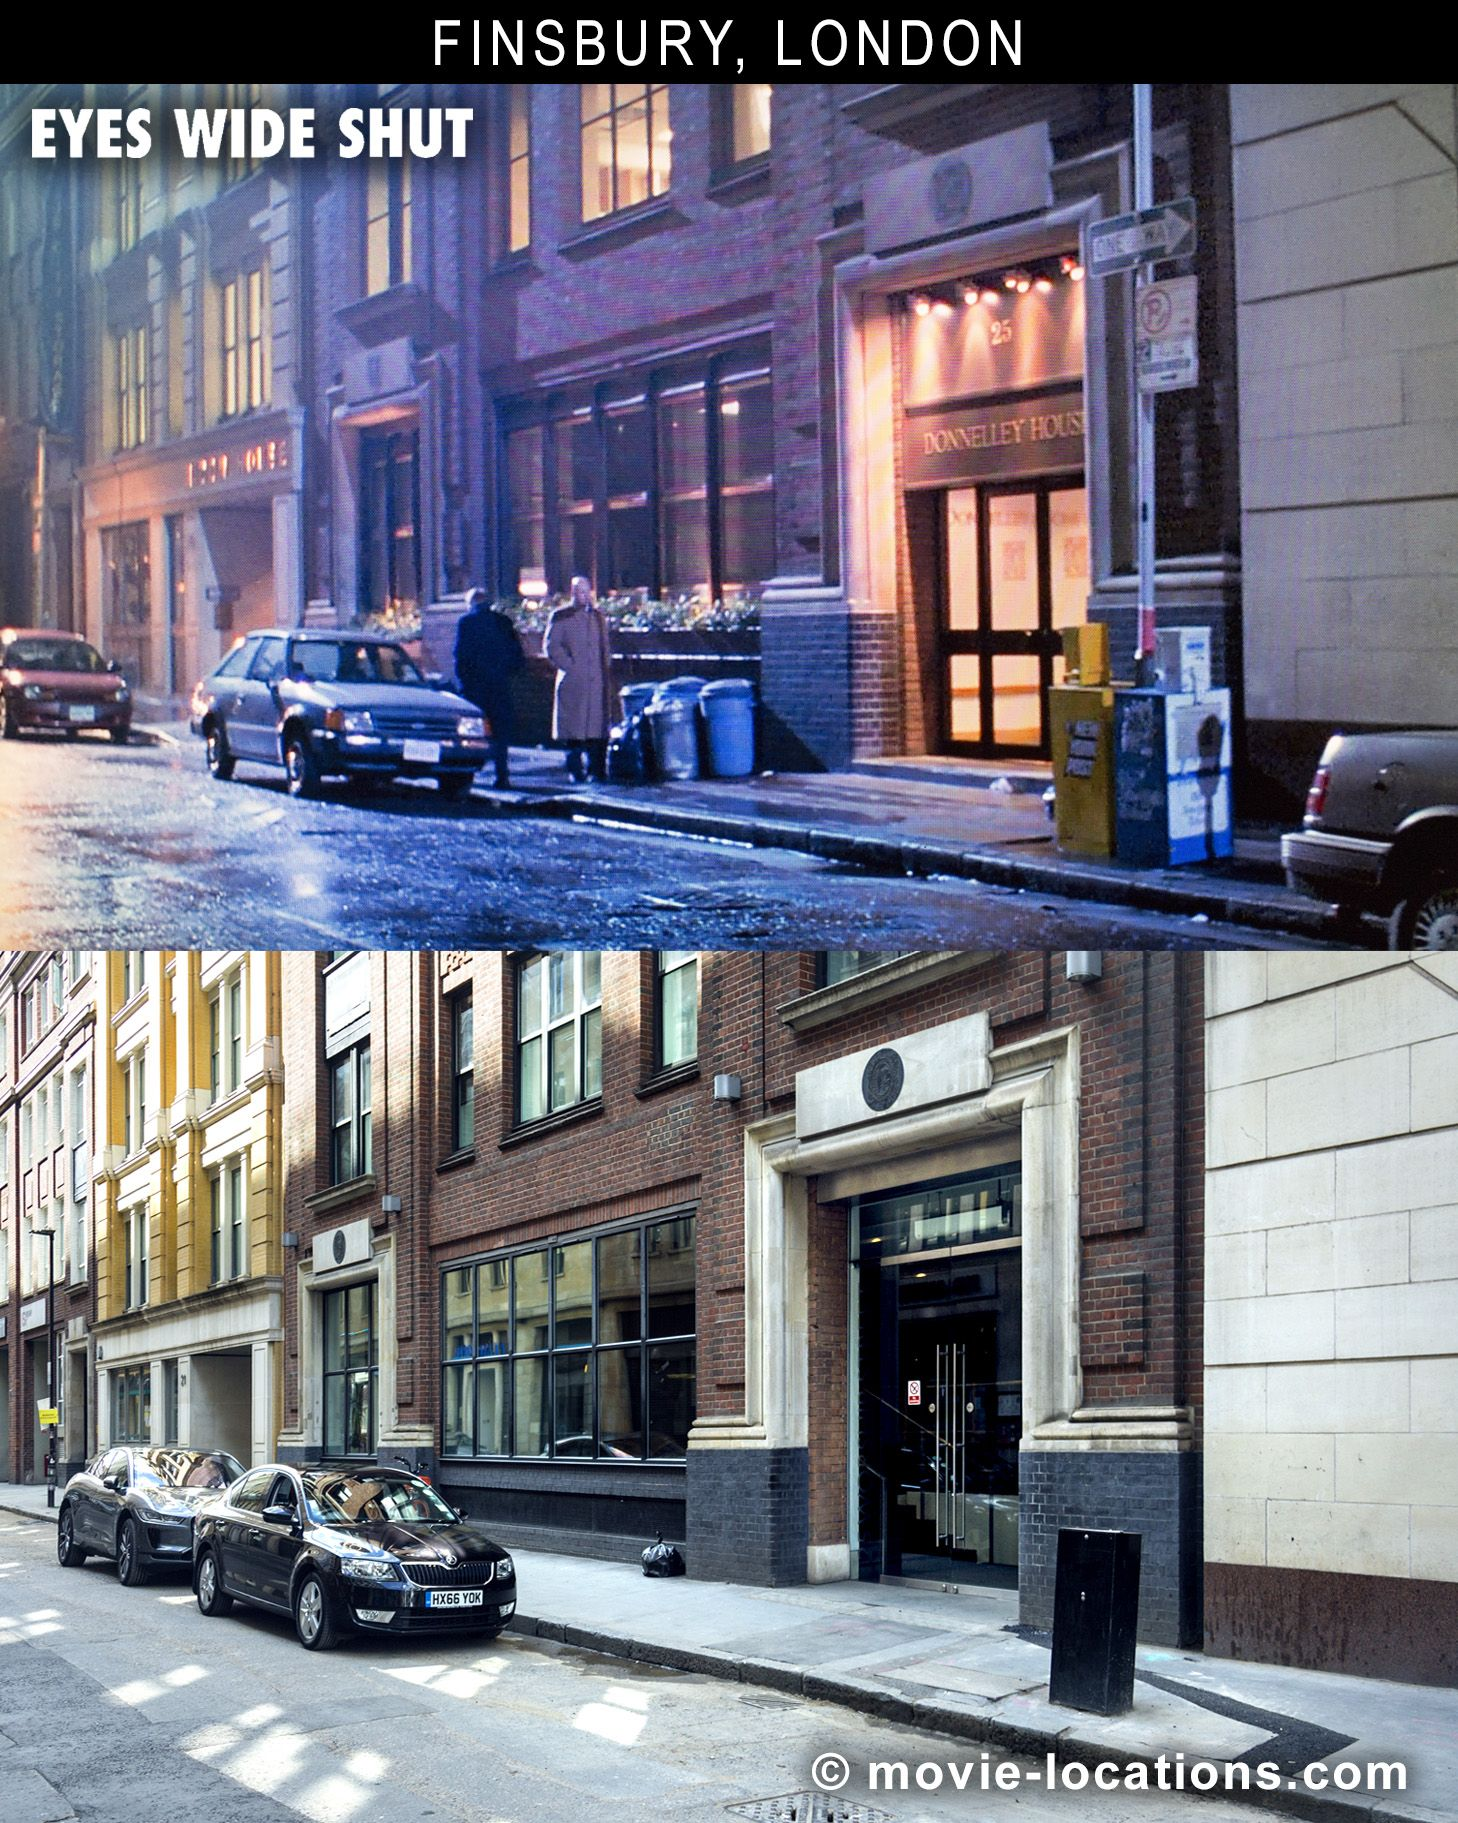 Filming Locations for Stanley Kubrick's final film, Eyes